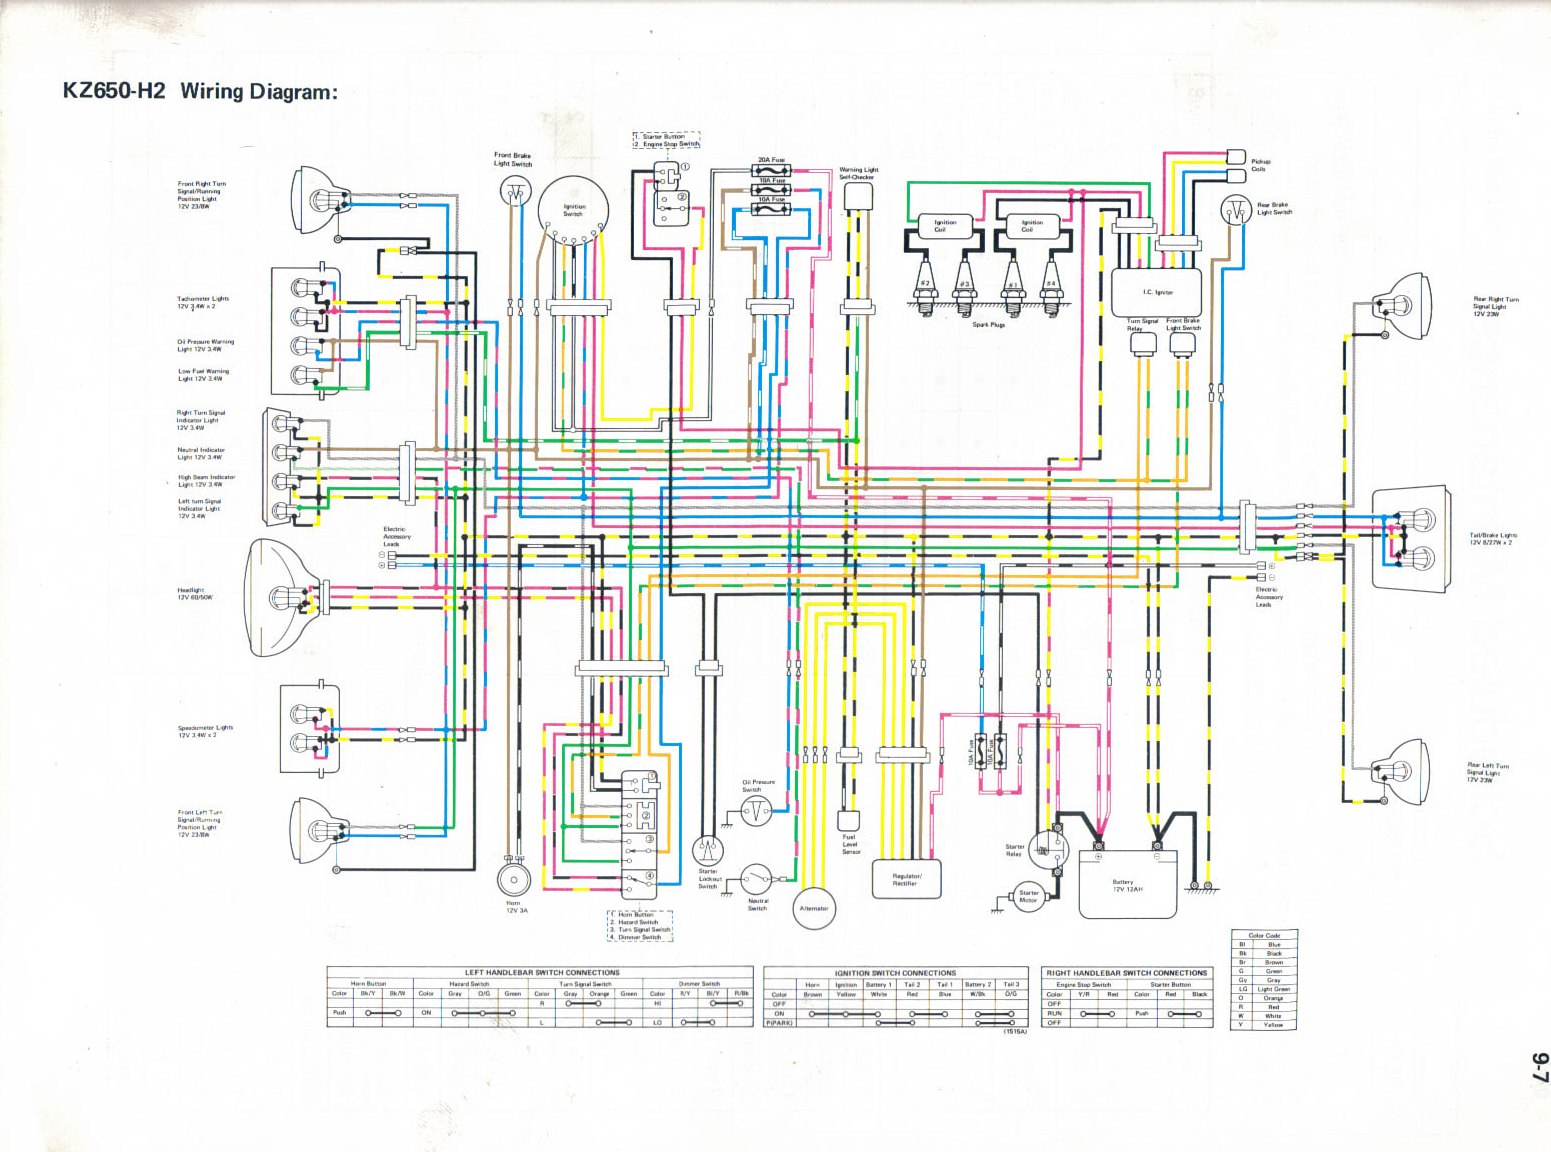 KZ650 H2 kawasaki h2 wiring diagram kawasaki wiring diagrams instruction ex500 wiring diagram at love-stories.co